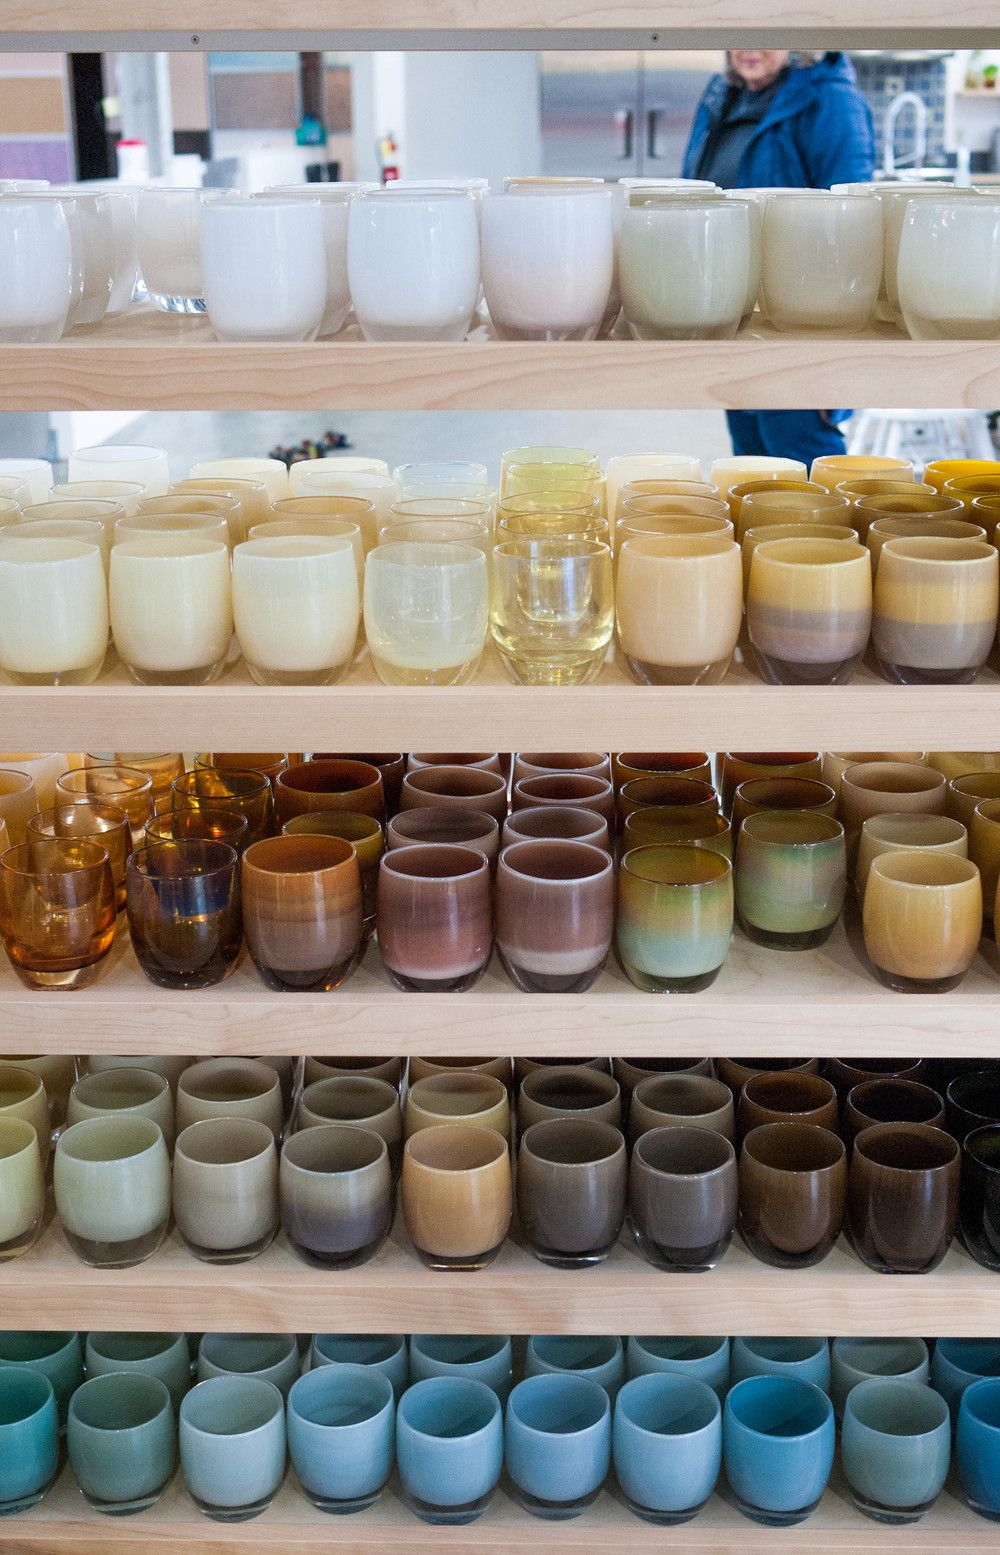 Check out these @glassybaby votives for stunning outdoor table decor. We took a behind-the-scenes tour of their studio. Beautiful stuff!